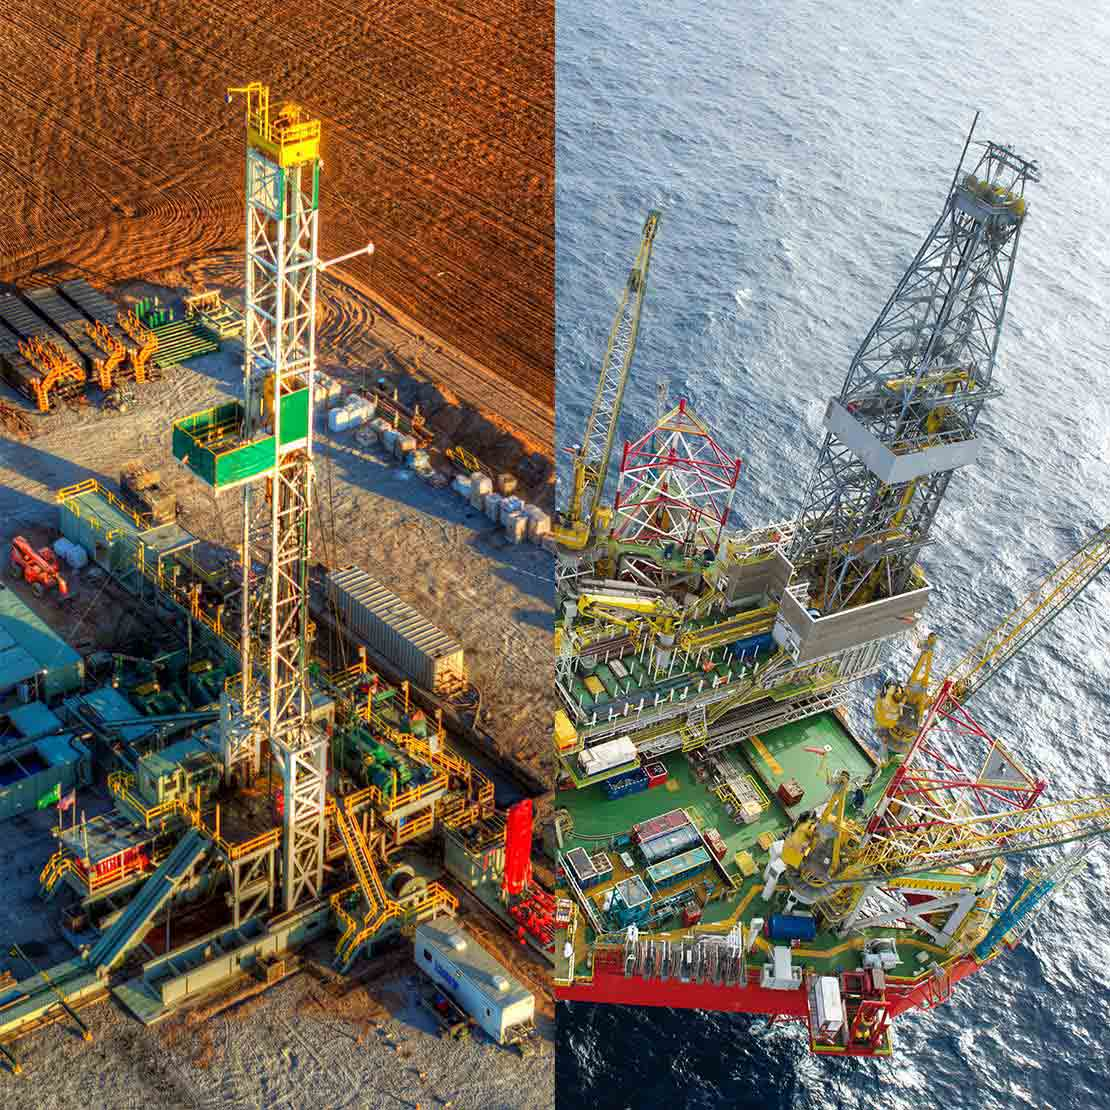 Rigs and Equipment - combo - Land and Offshore rigs